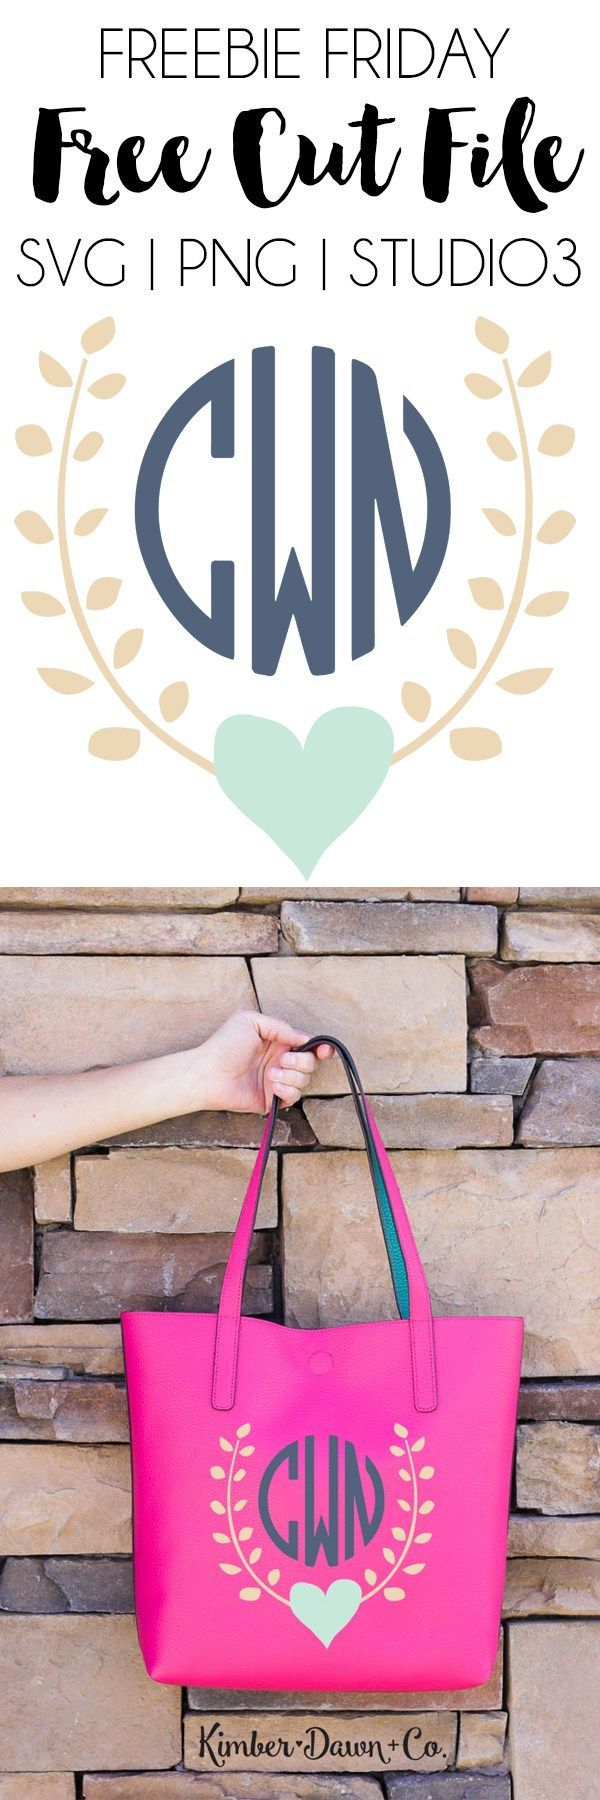 Heart Garland Monogram Free Cut File available in SVG, PNG, DXF and STUDIO3 formats for use with your Silhouette or Cricut Cutting Machines!   http://KimberDawnCo.com